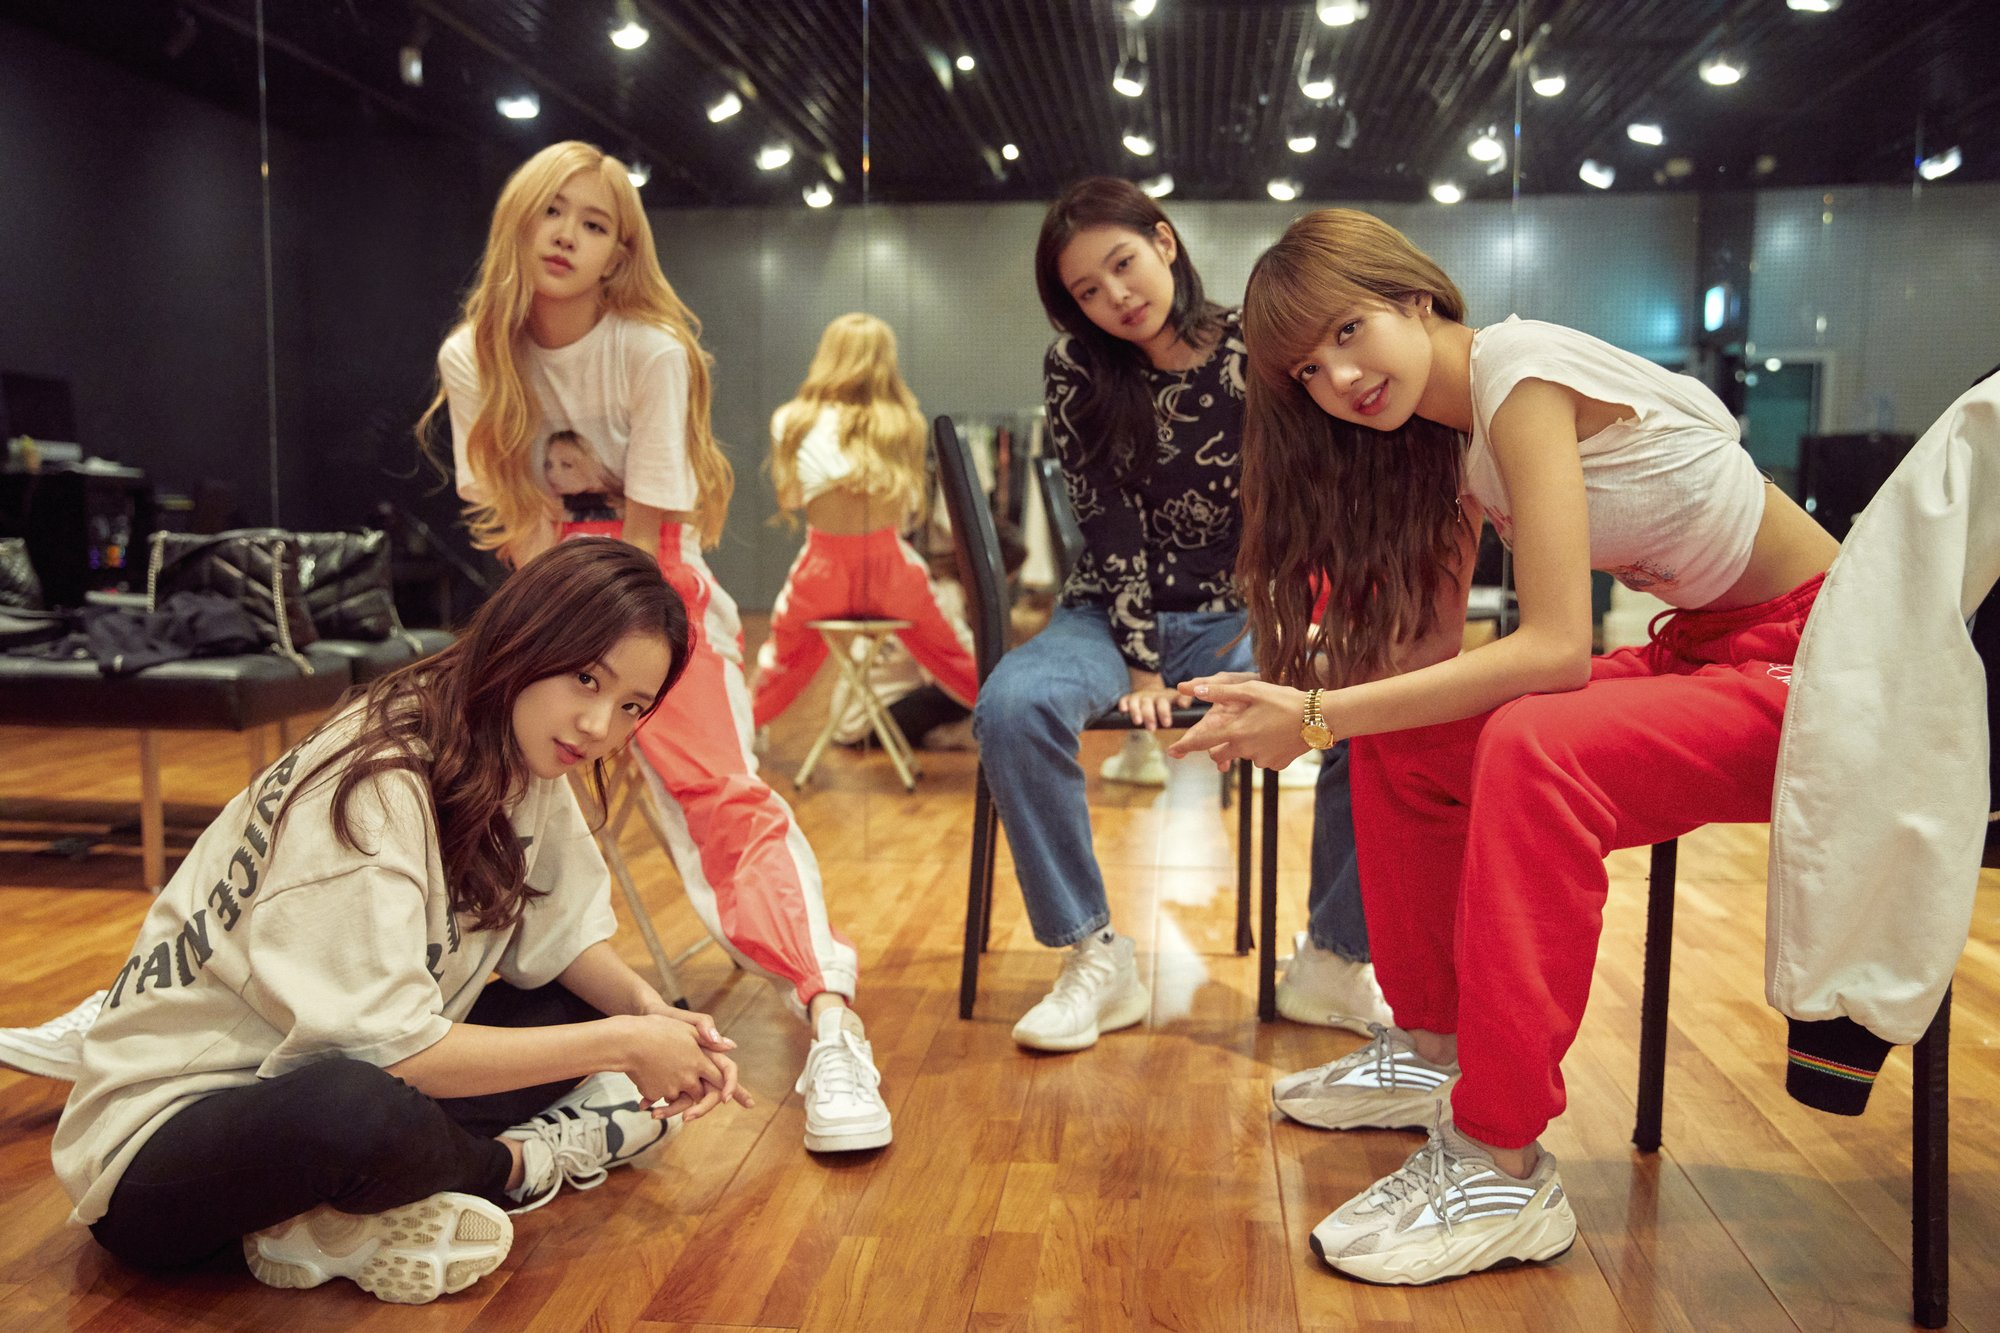 after ruling k pop blackpink aim to takeover pop world too after ruling k pop blackpink aim to